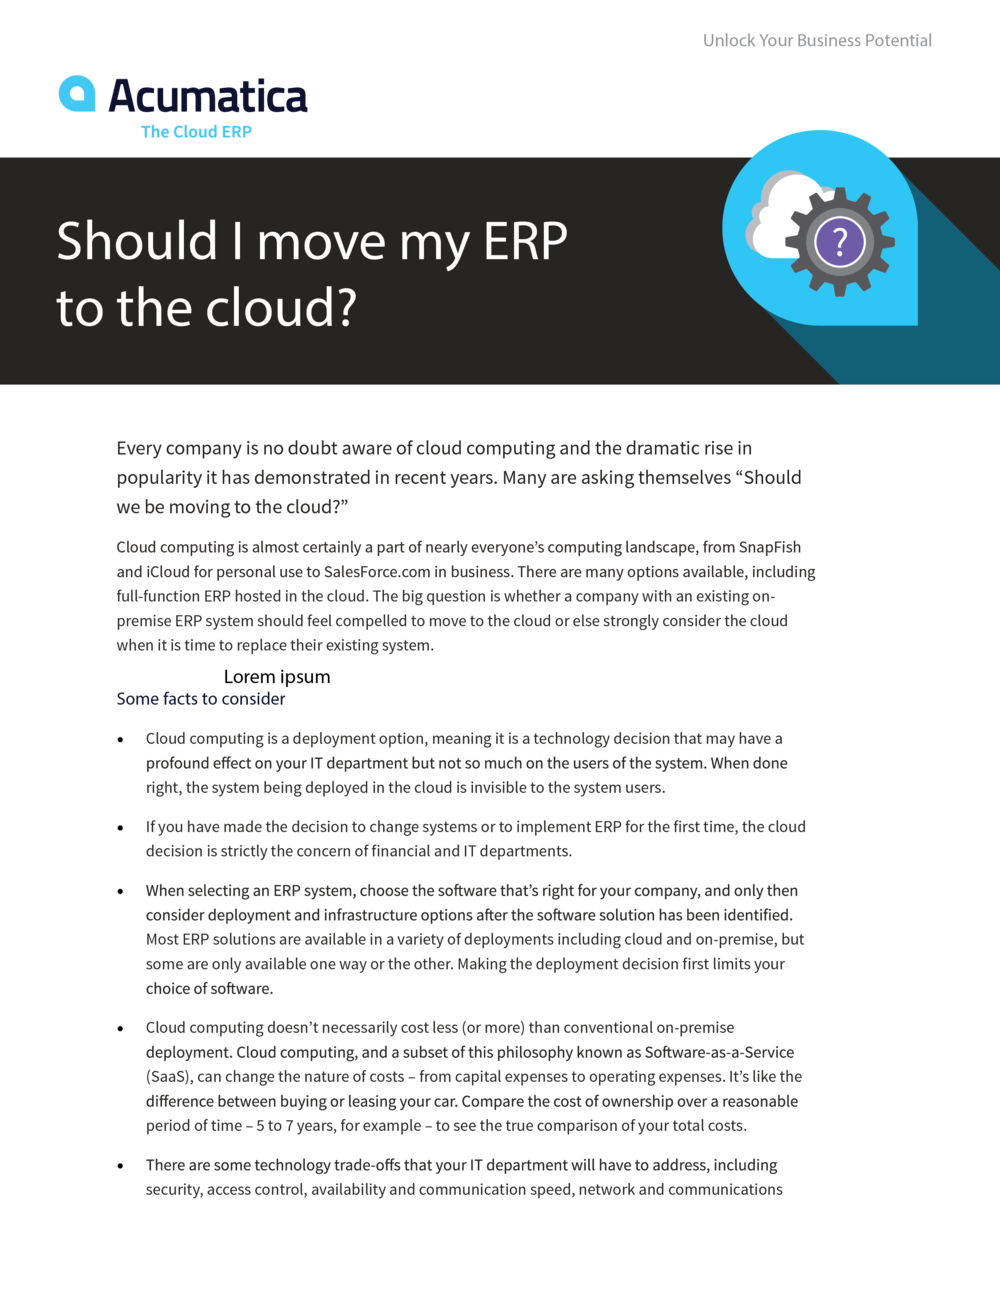 Should I move my erp to the cloud